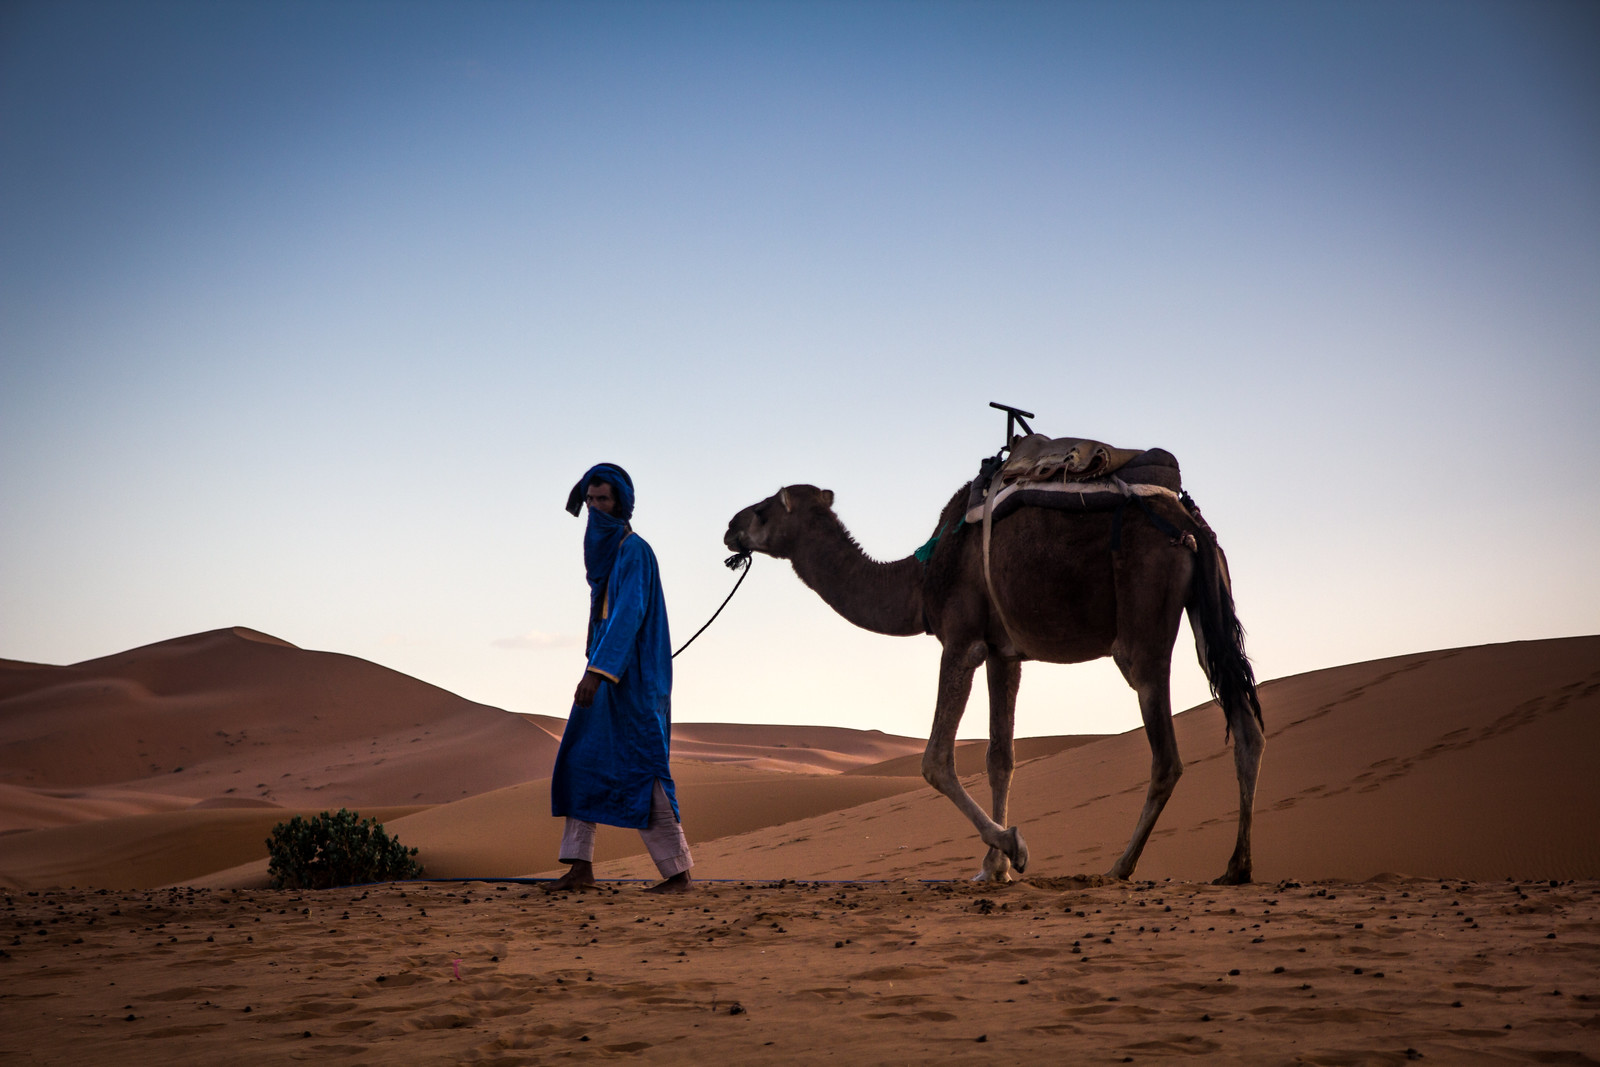 Camel in Silhouette